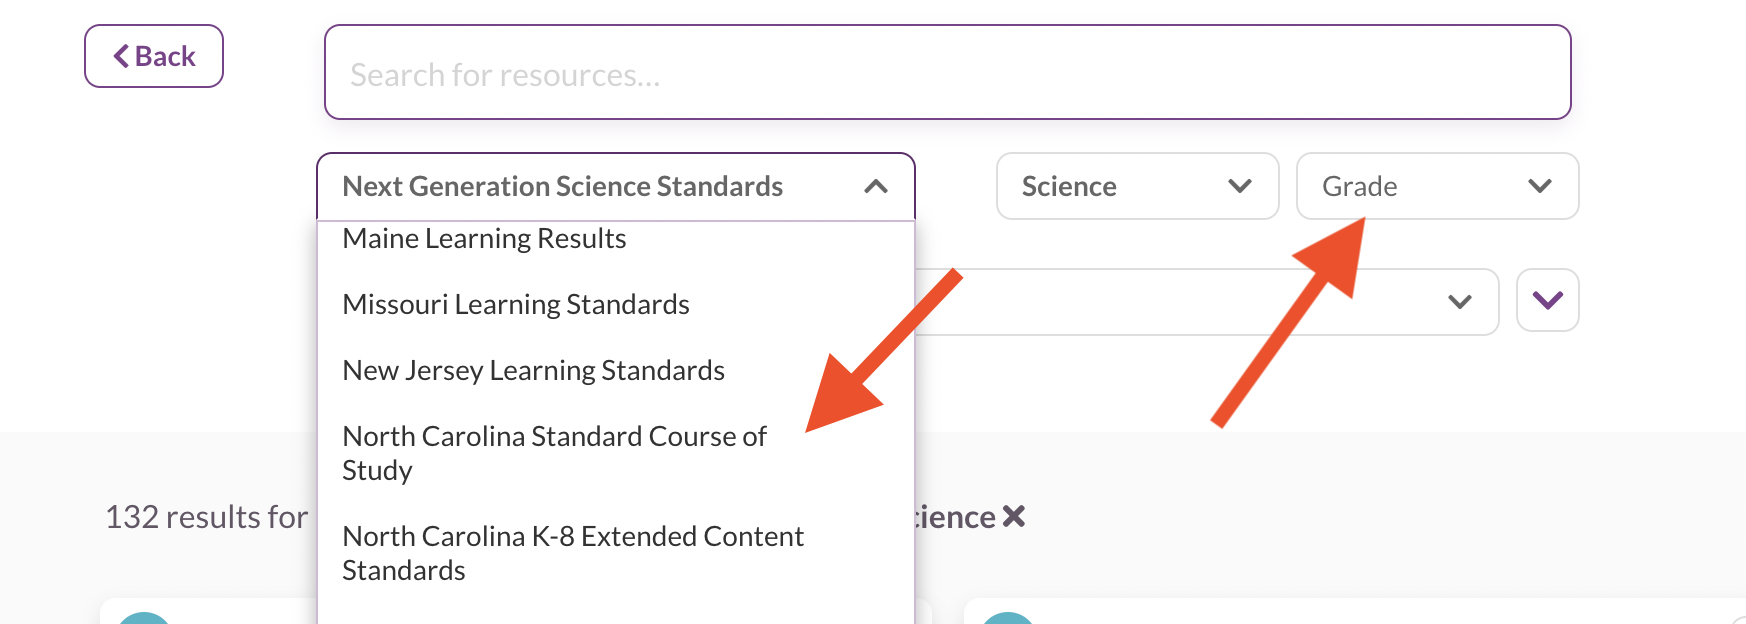 Searching for science diagnostic quizzes using filters